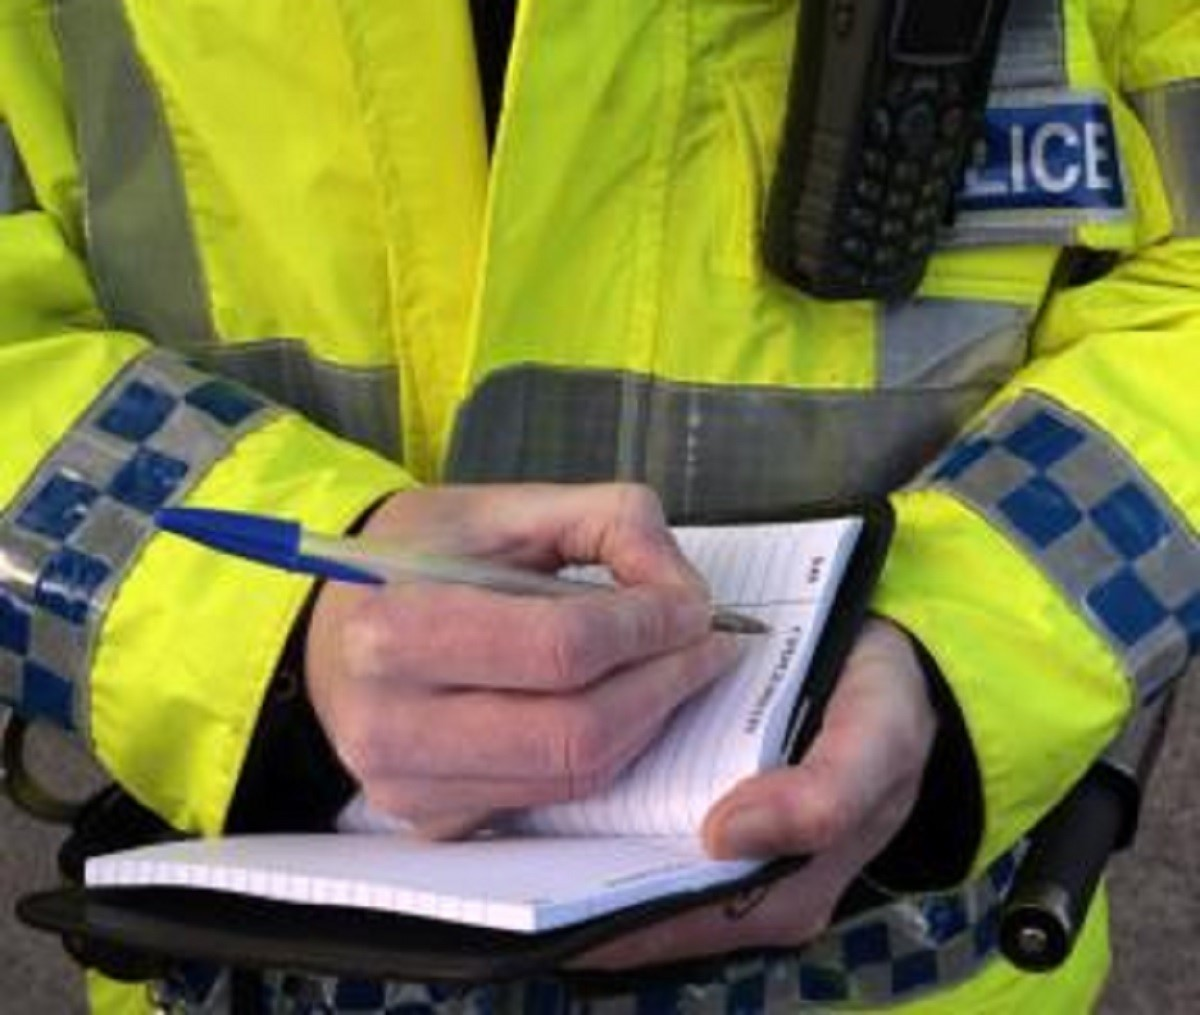 Police 'picking up pieces of broken mental health system', watchdog warns